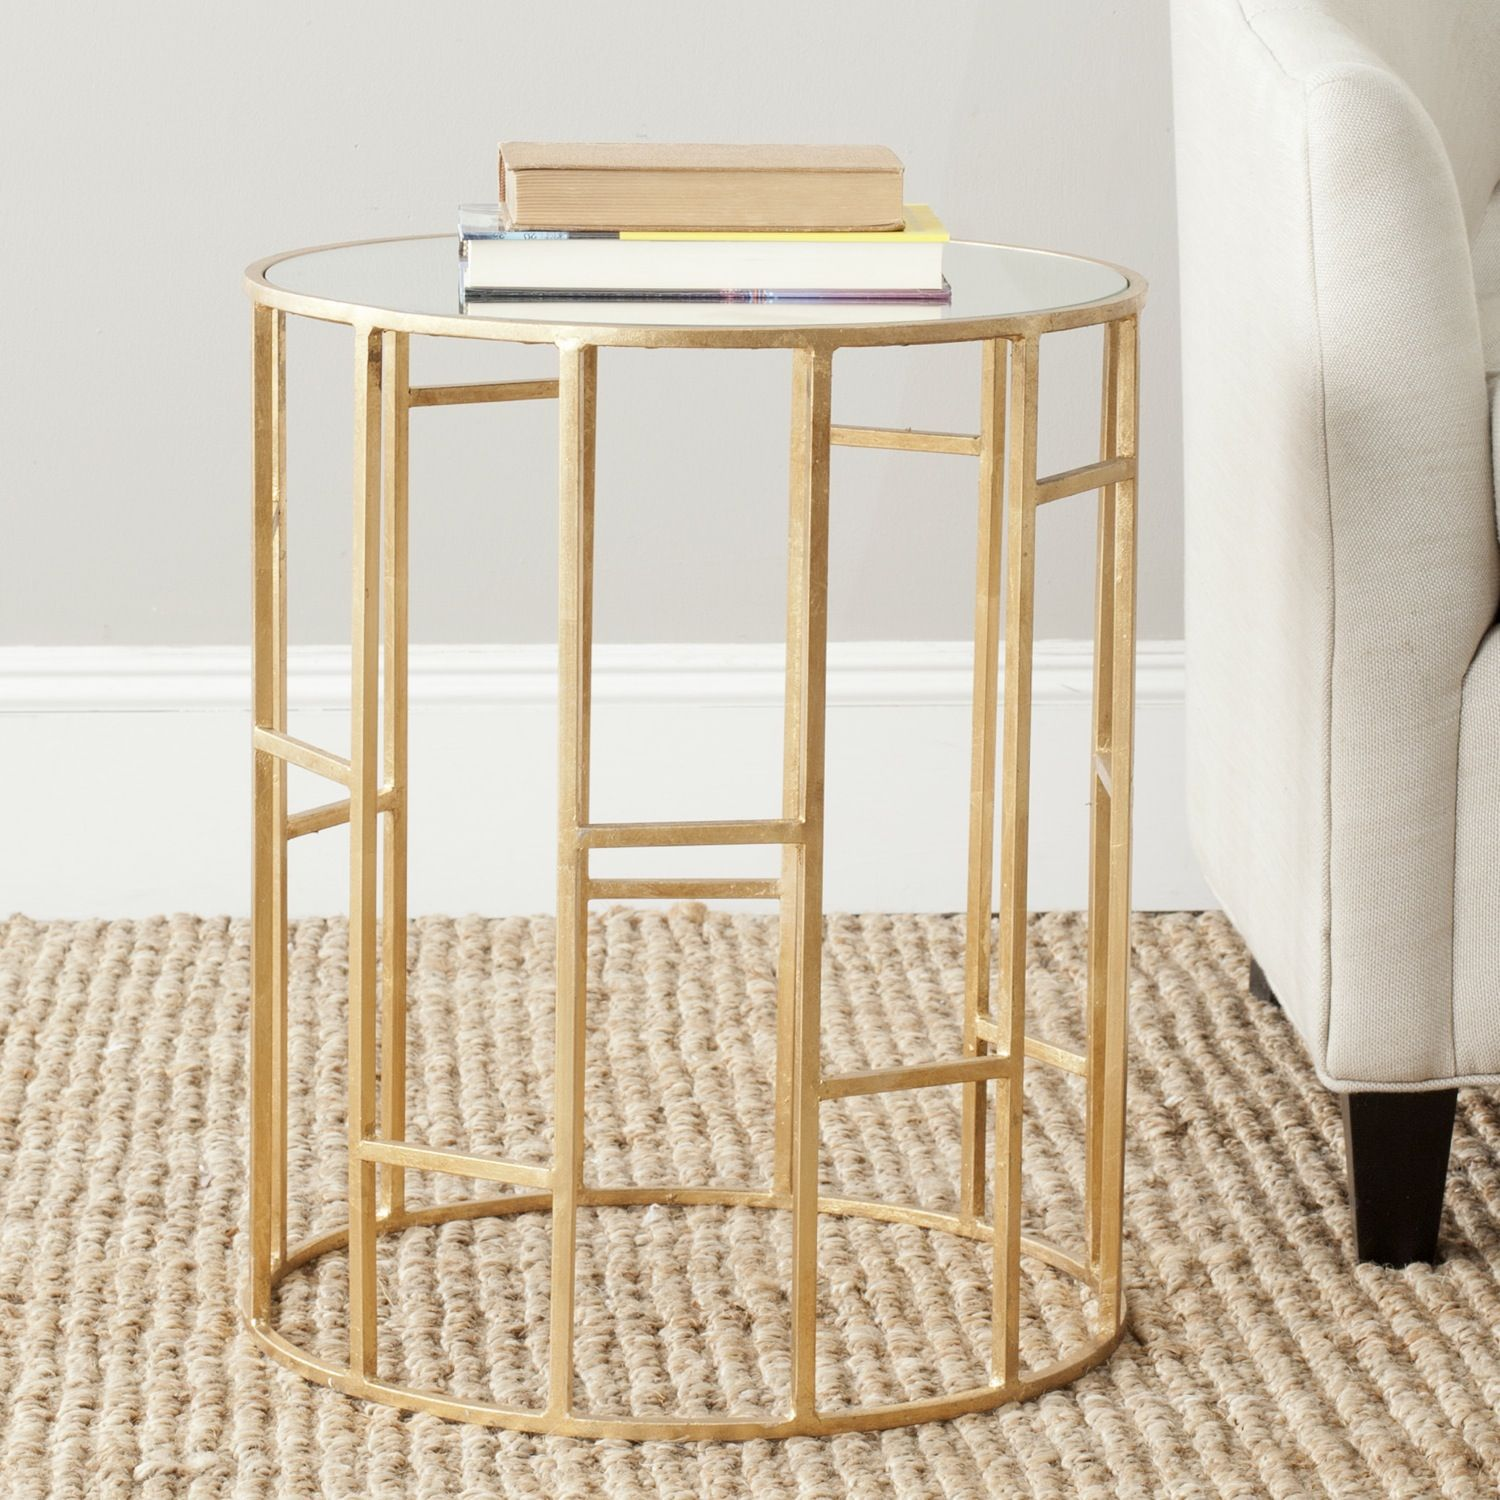 safavieh treasures doreen gold mirror top accent table condos solid wood sofa glass entry concrete mirrored bedside lockers small pine nightstand target contemporary end tables